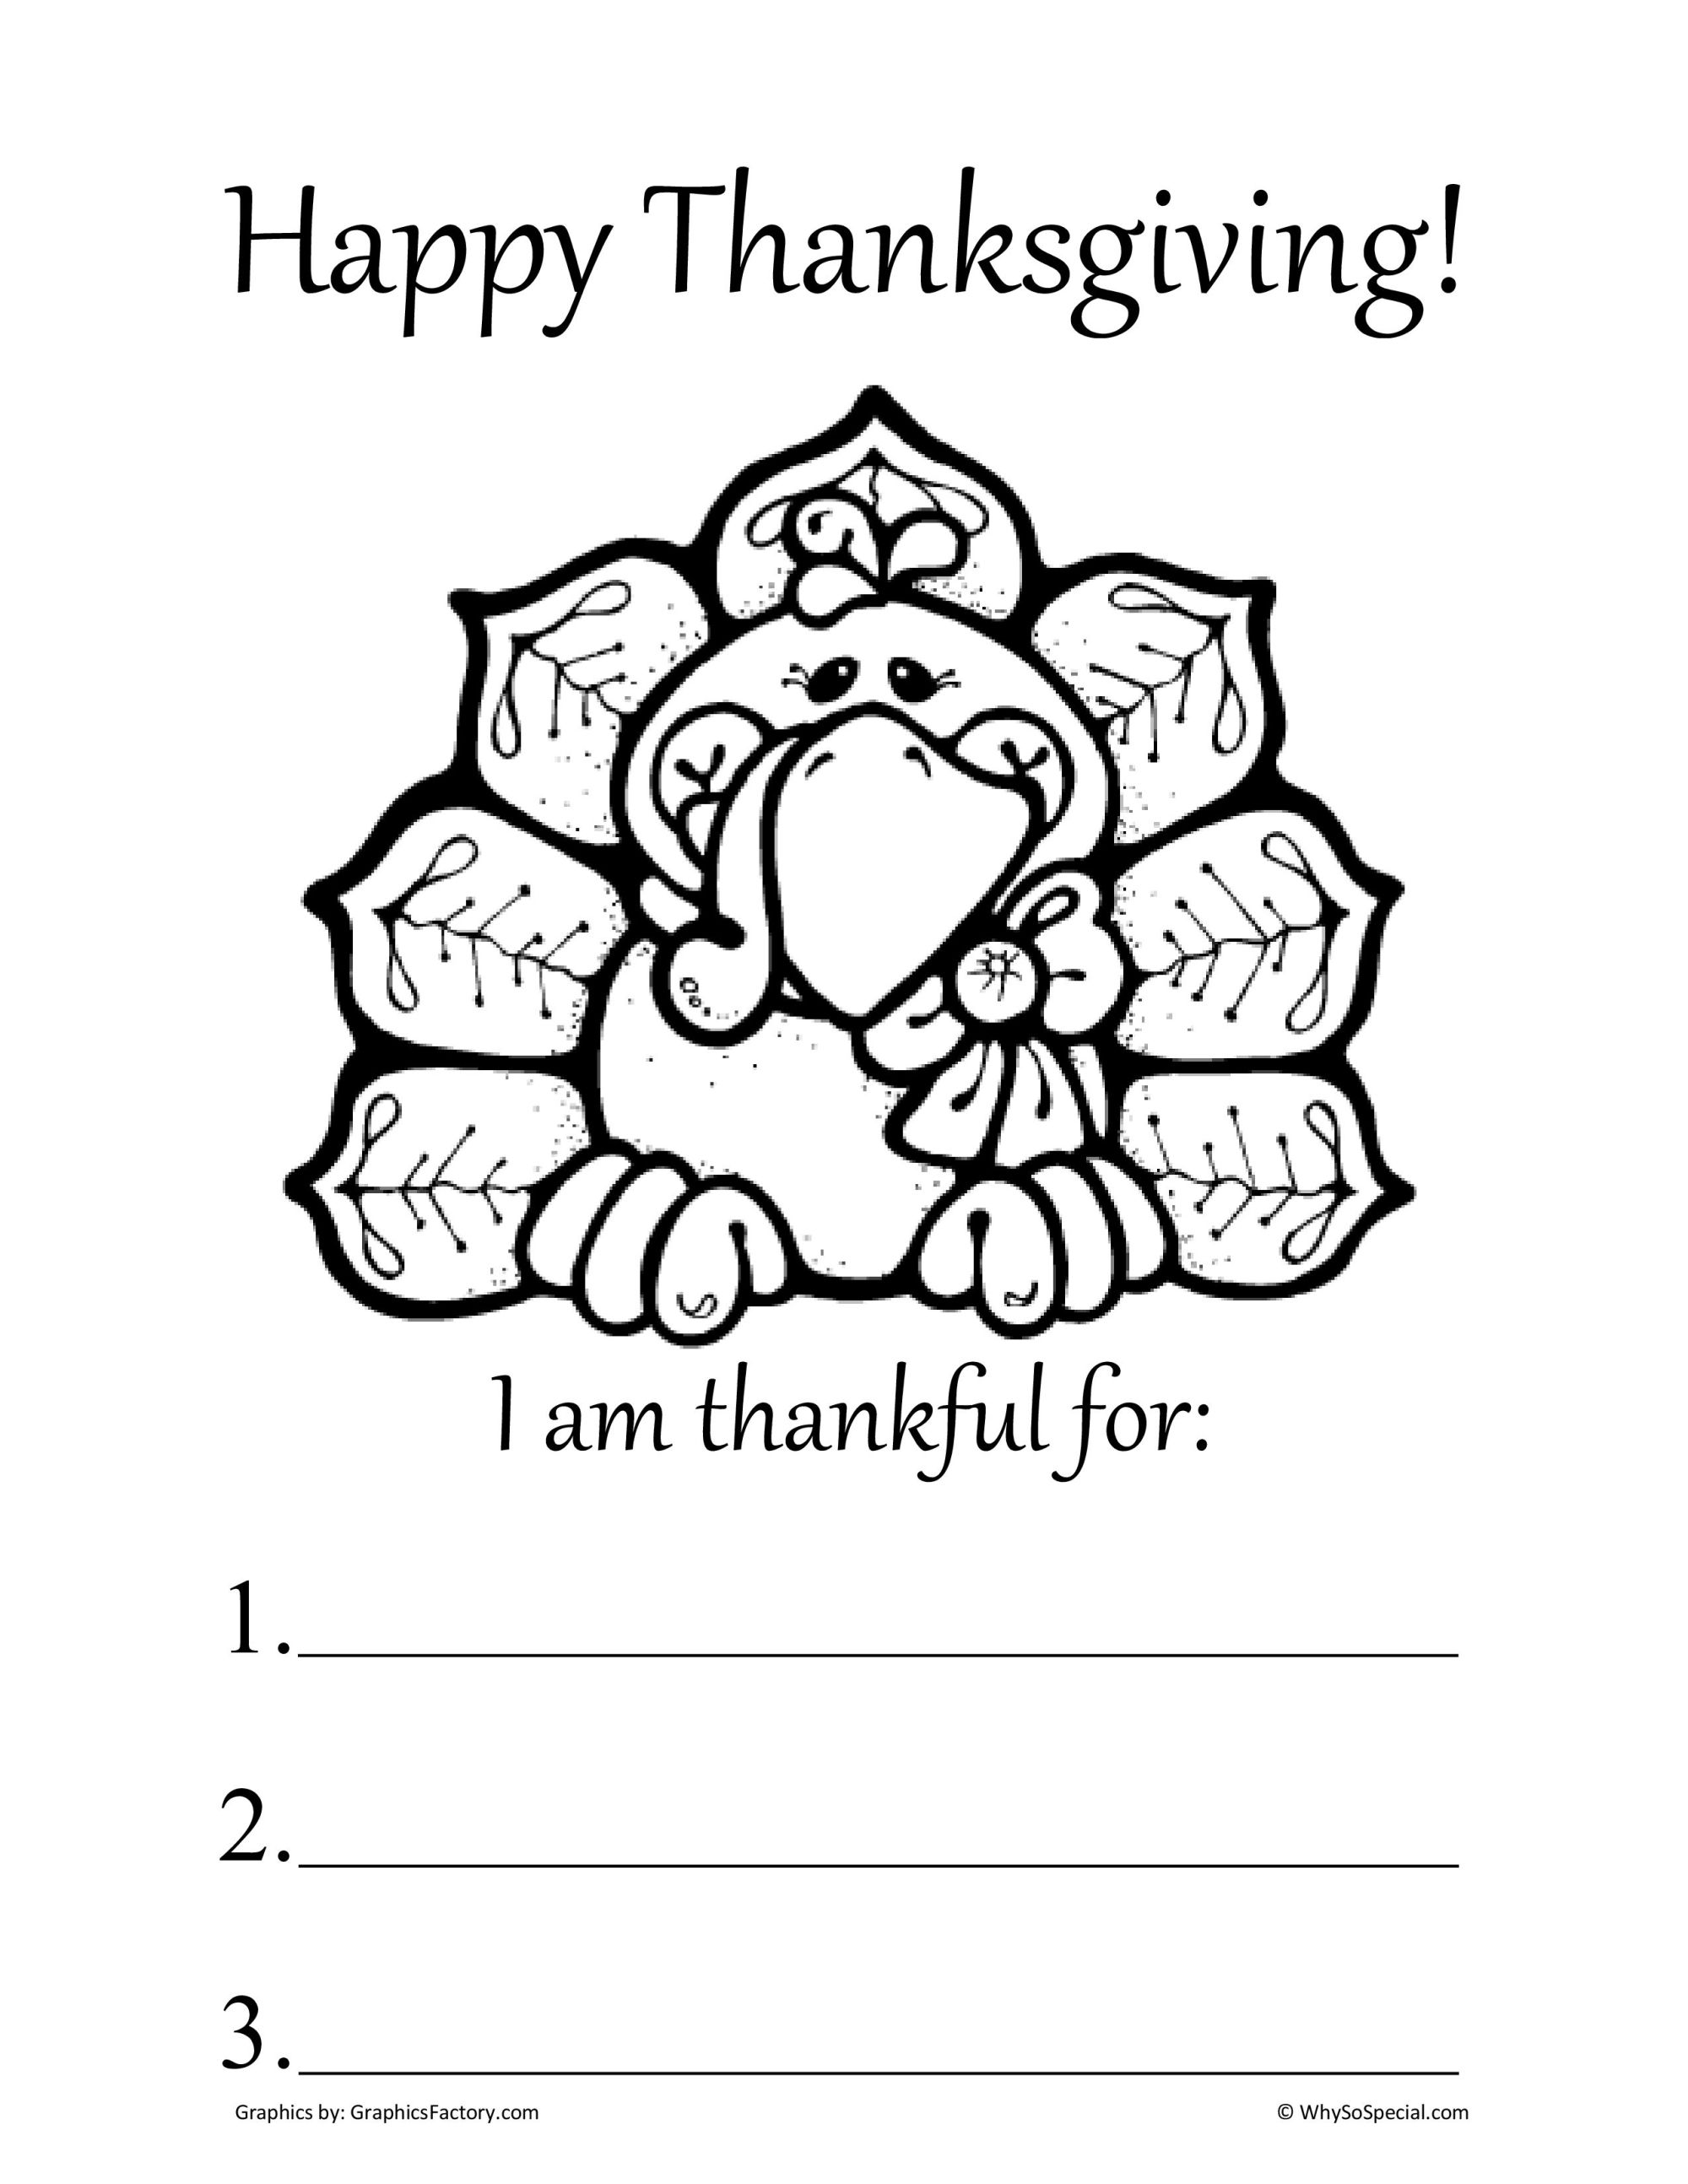 hight resolution of 9 Best Thanksgiving Worksheets images on Best Worksheets Collection